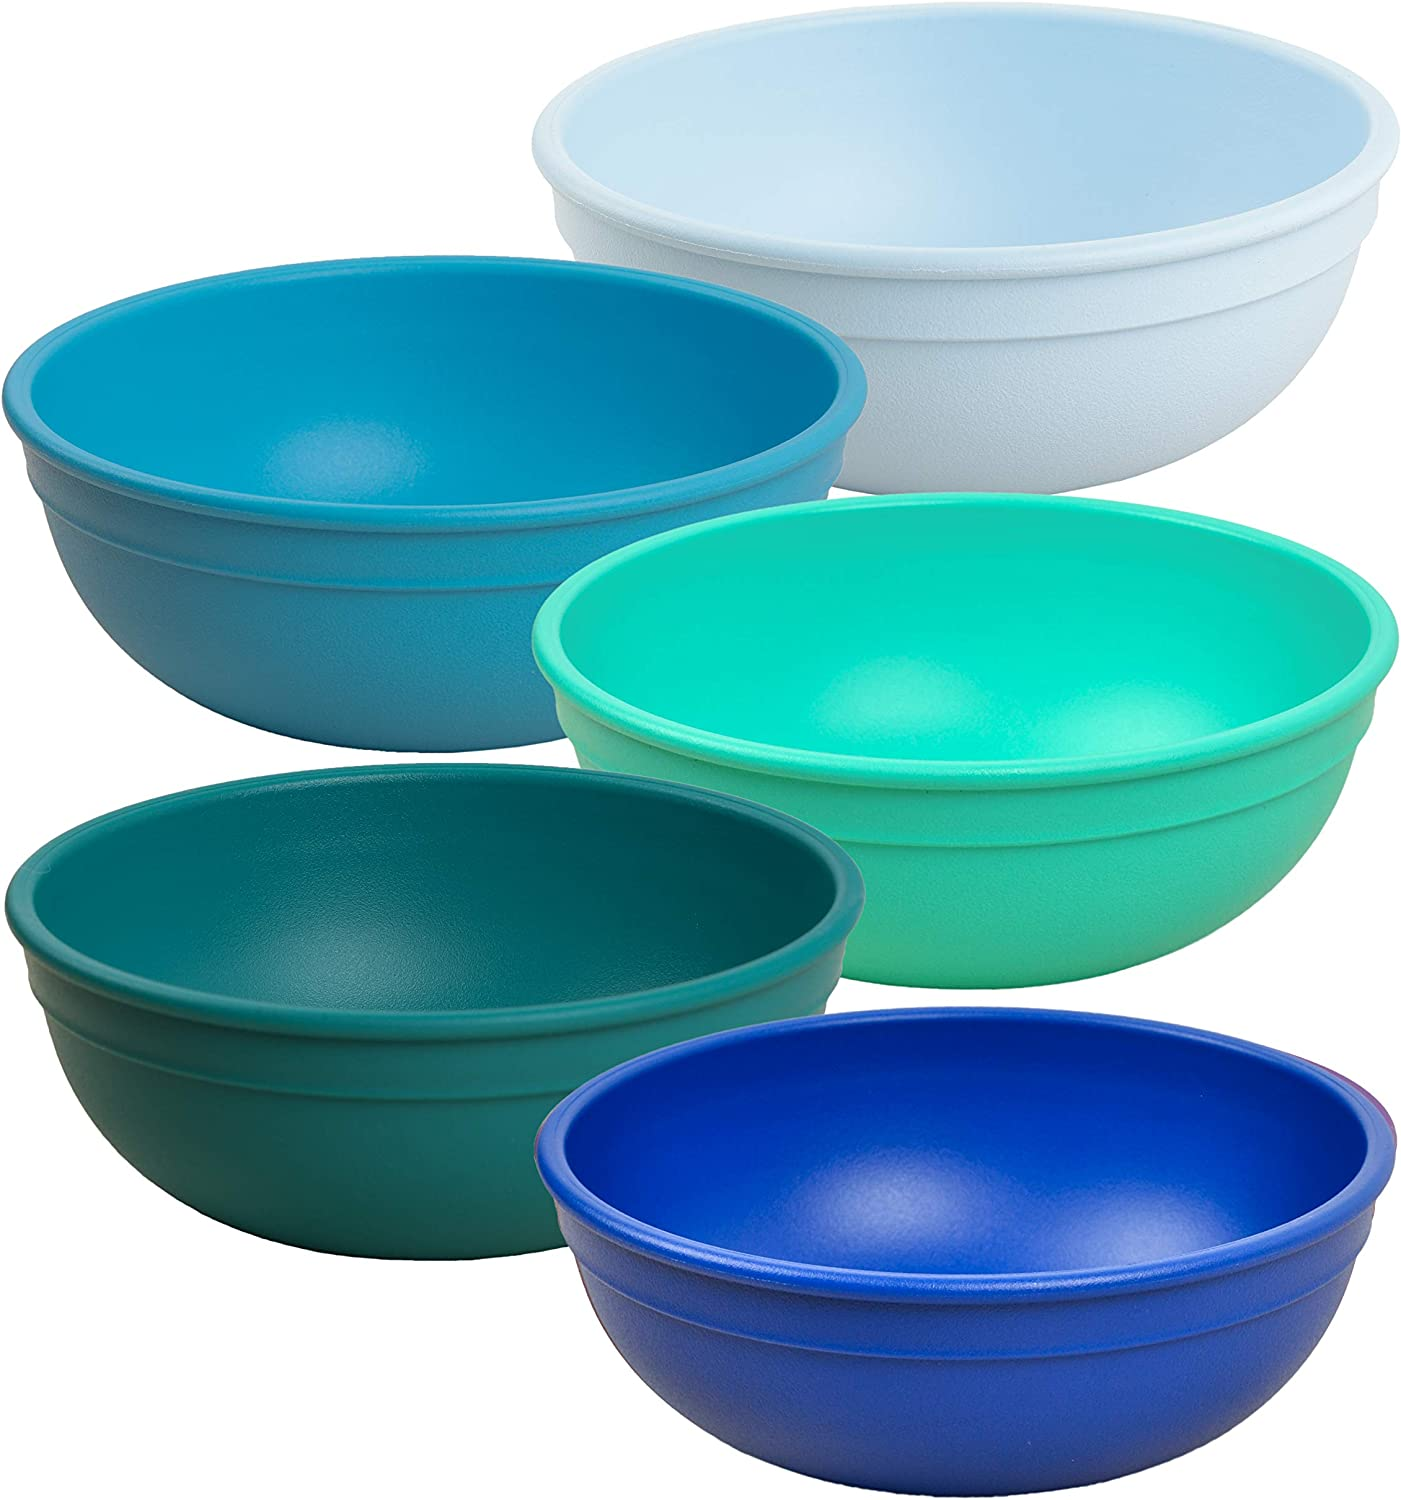 RE-PLAY 20 oz. Bowls Clearance SALE New color Limited time for Parties Outdoor Dinner Lunch